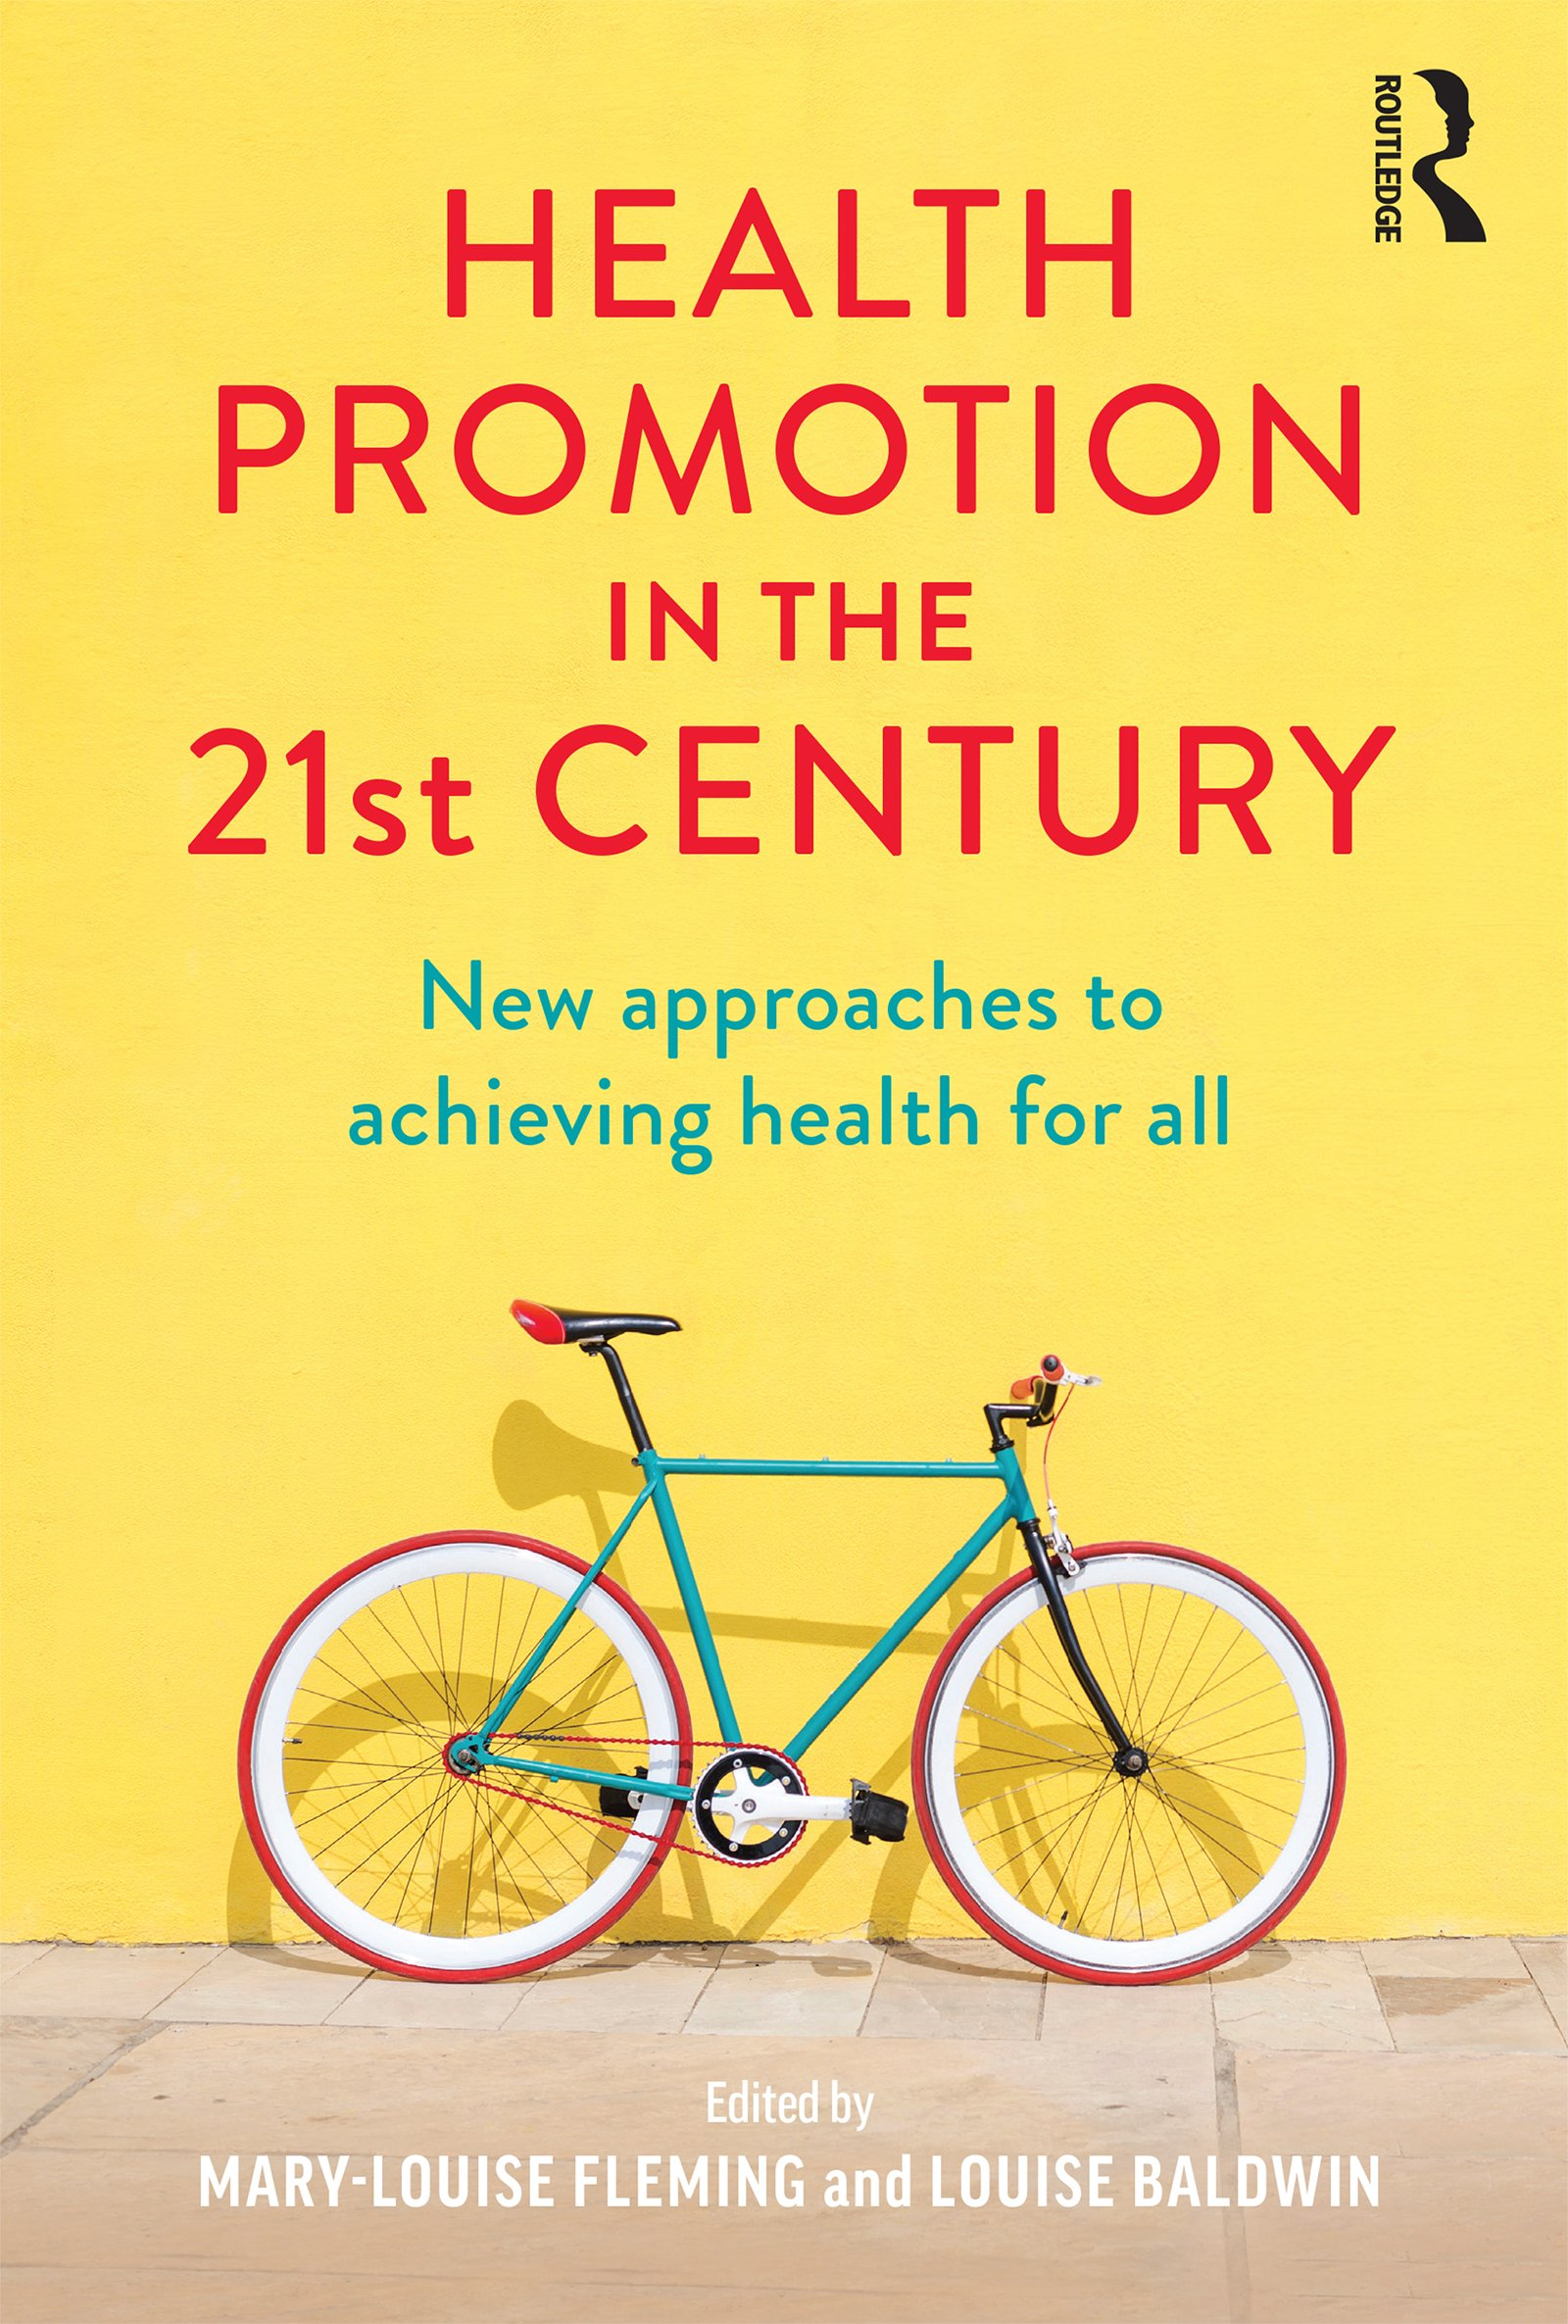 The importance of health promotion principles and practices